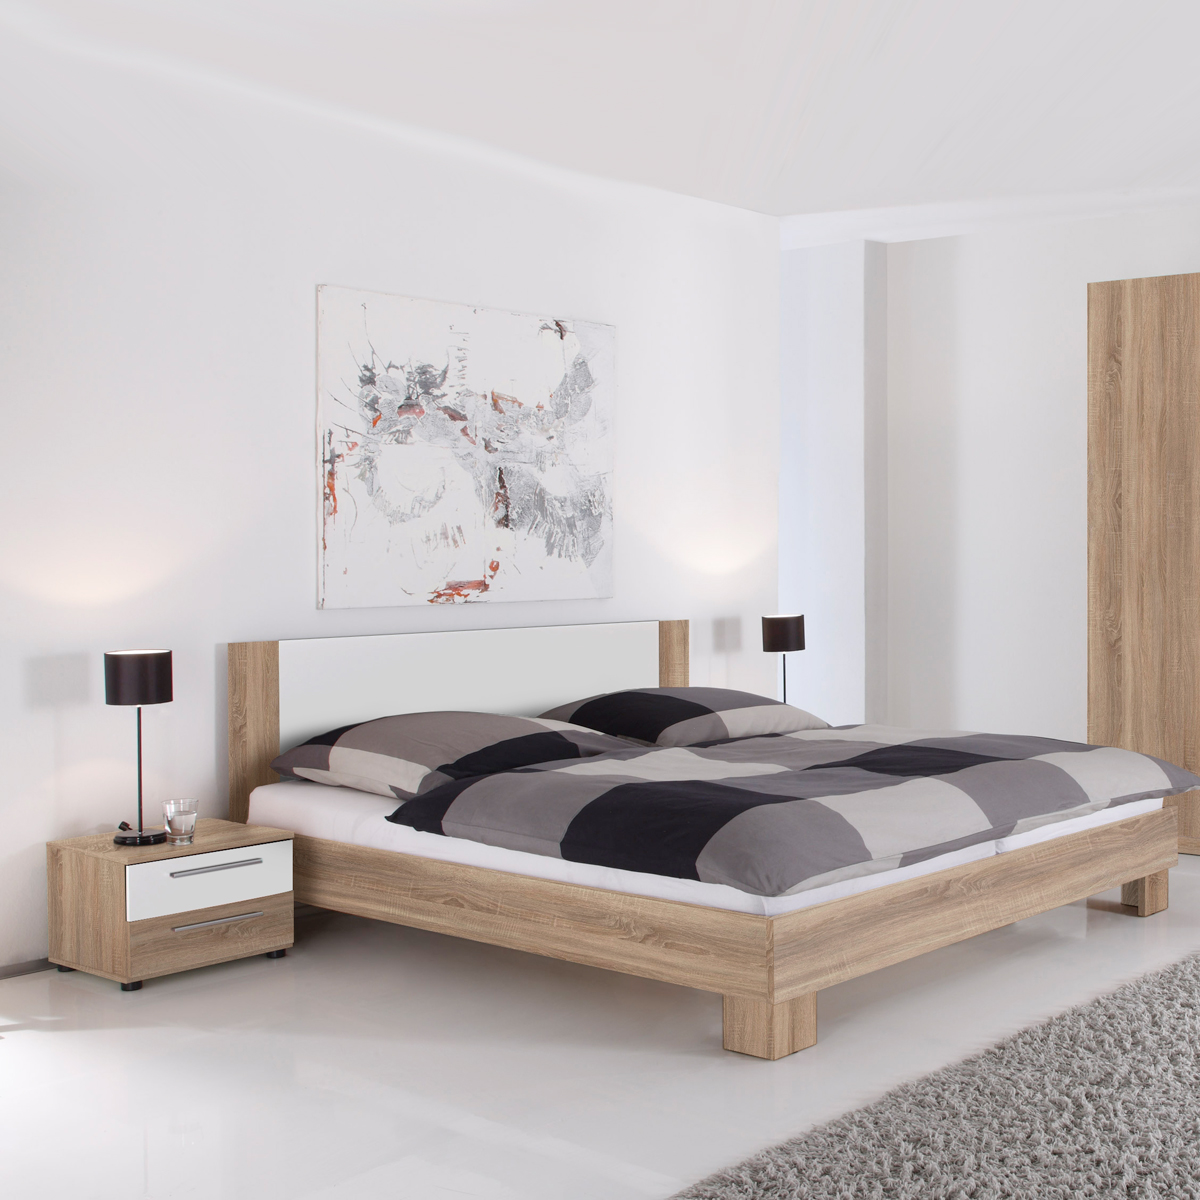 bettanlage martina in sonoma eiche s gerau und wei. Black Bedroom Furniture Sets. Home Design Ideas